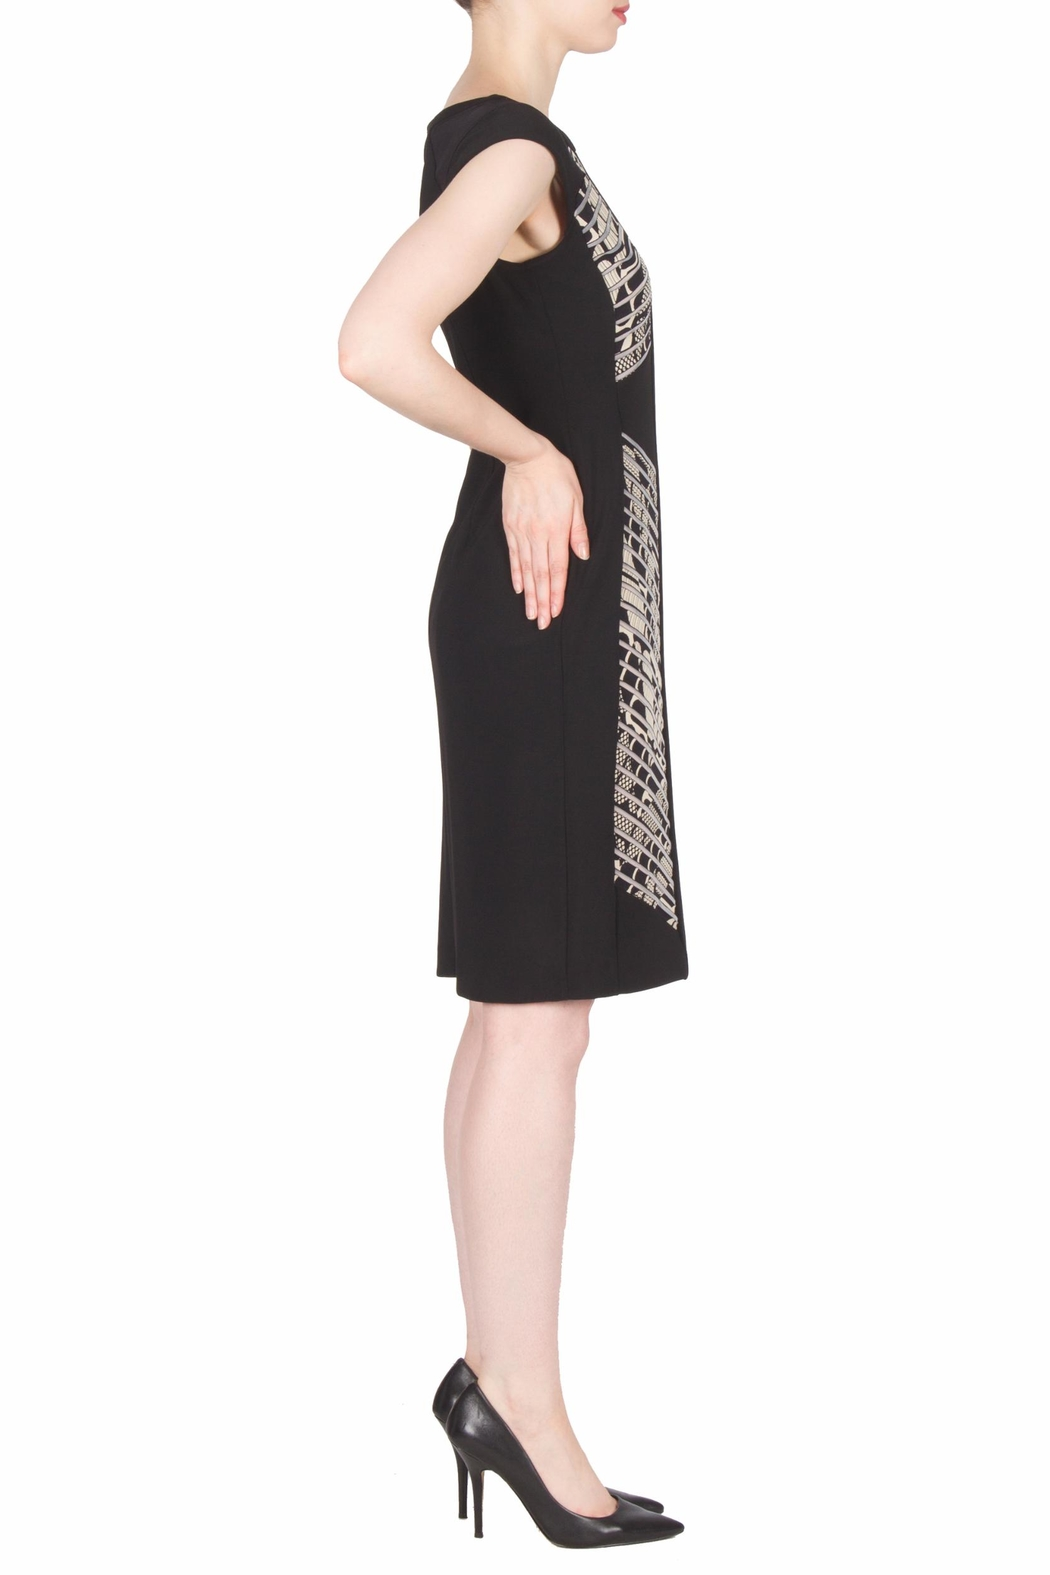 Joseph Ribkoff Samantha Dress - Front Full Image